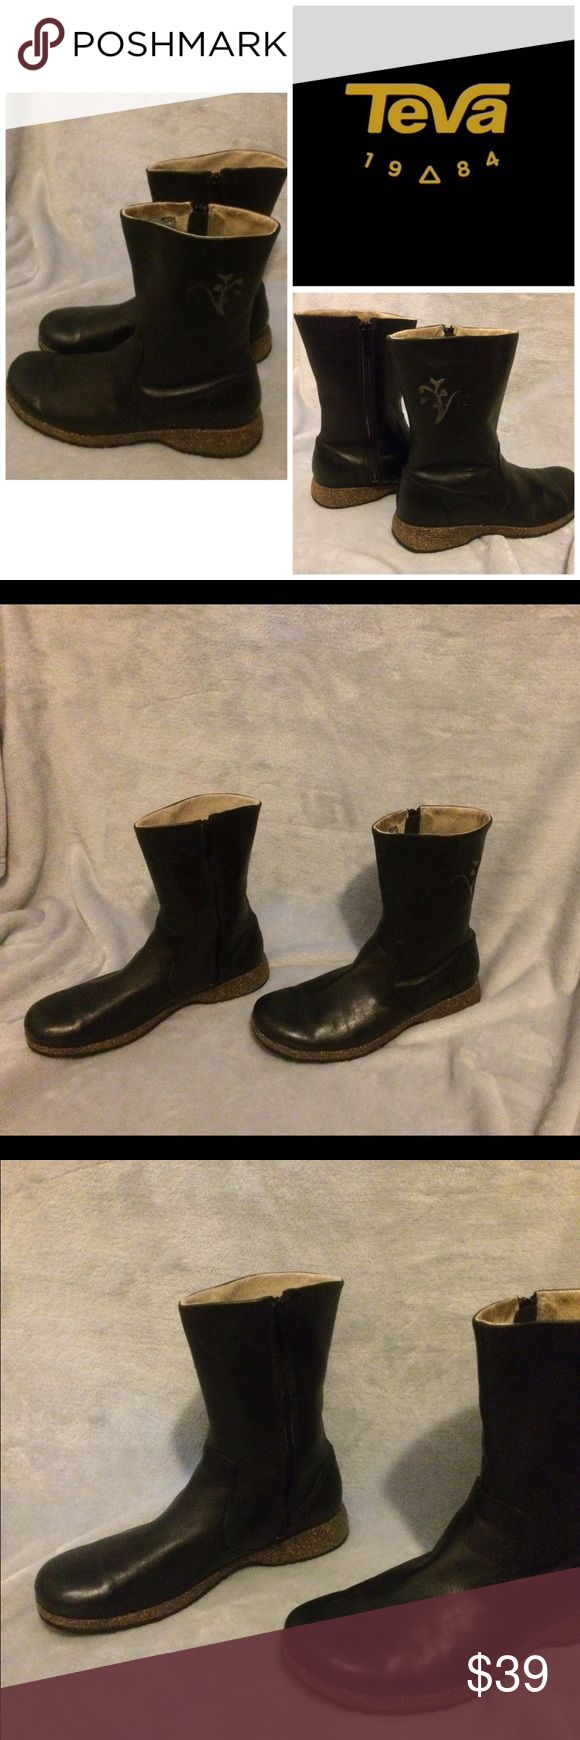 TEVA Black Leather Round Toe Boots For sale:Women's TEVA Black Round Toe Side Zipper Flat Boots. Size: 8M. Embroidered TEVA logo on the side of the boots. Excellent pre-owned condition. Soles are in excellent condition. Minimal wear on the inner shaft. Interested? Like, share, bundle, buy! Teva Shoes Ankle Boots & Booties